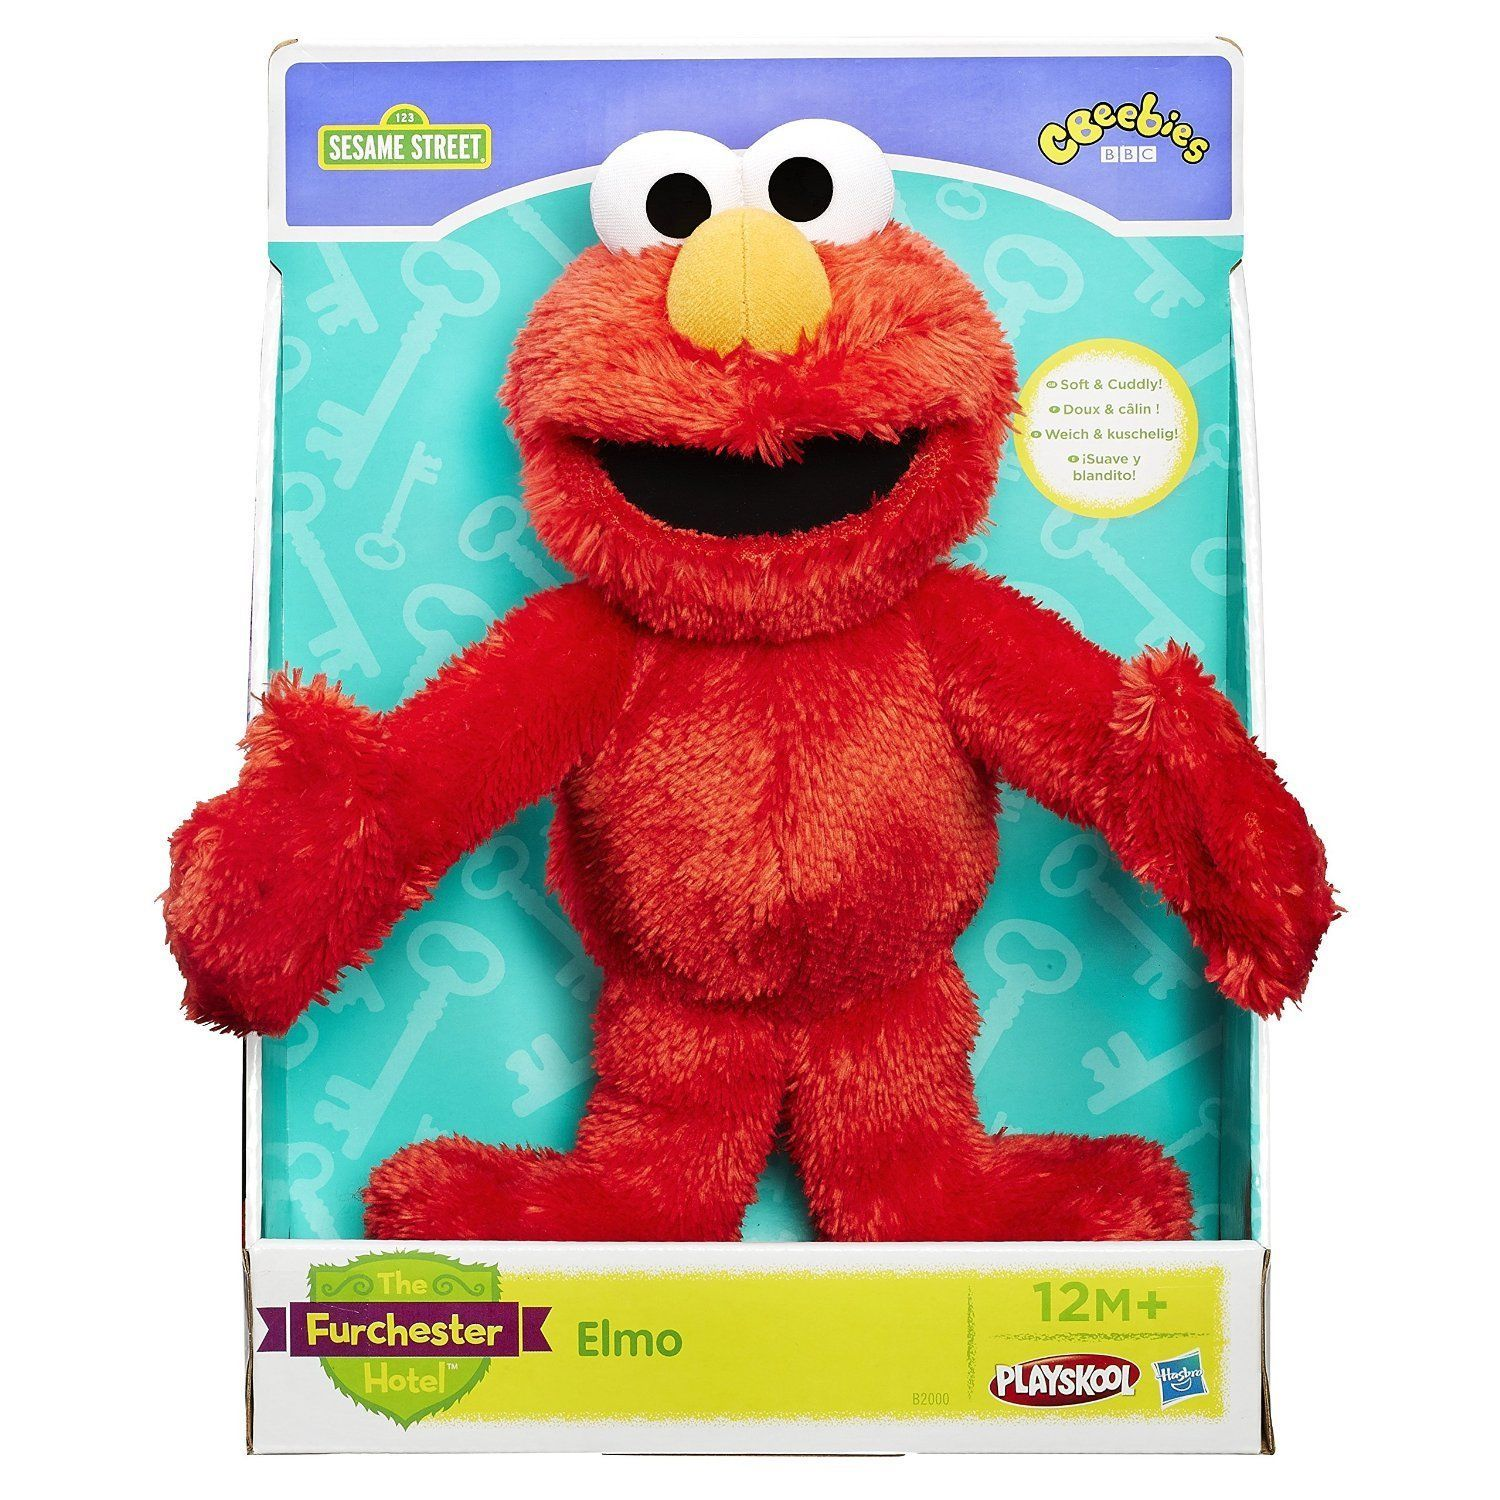 Sesame Street Elmo Toys : The furchester hotel sesame street let s cuddle plush